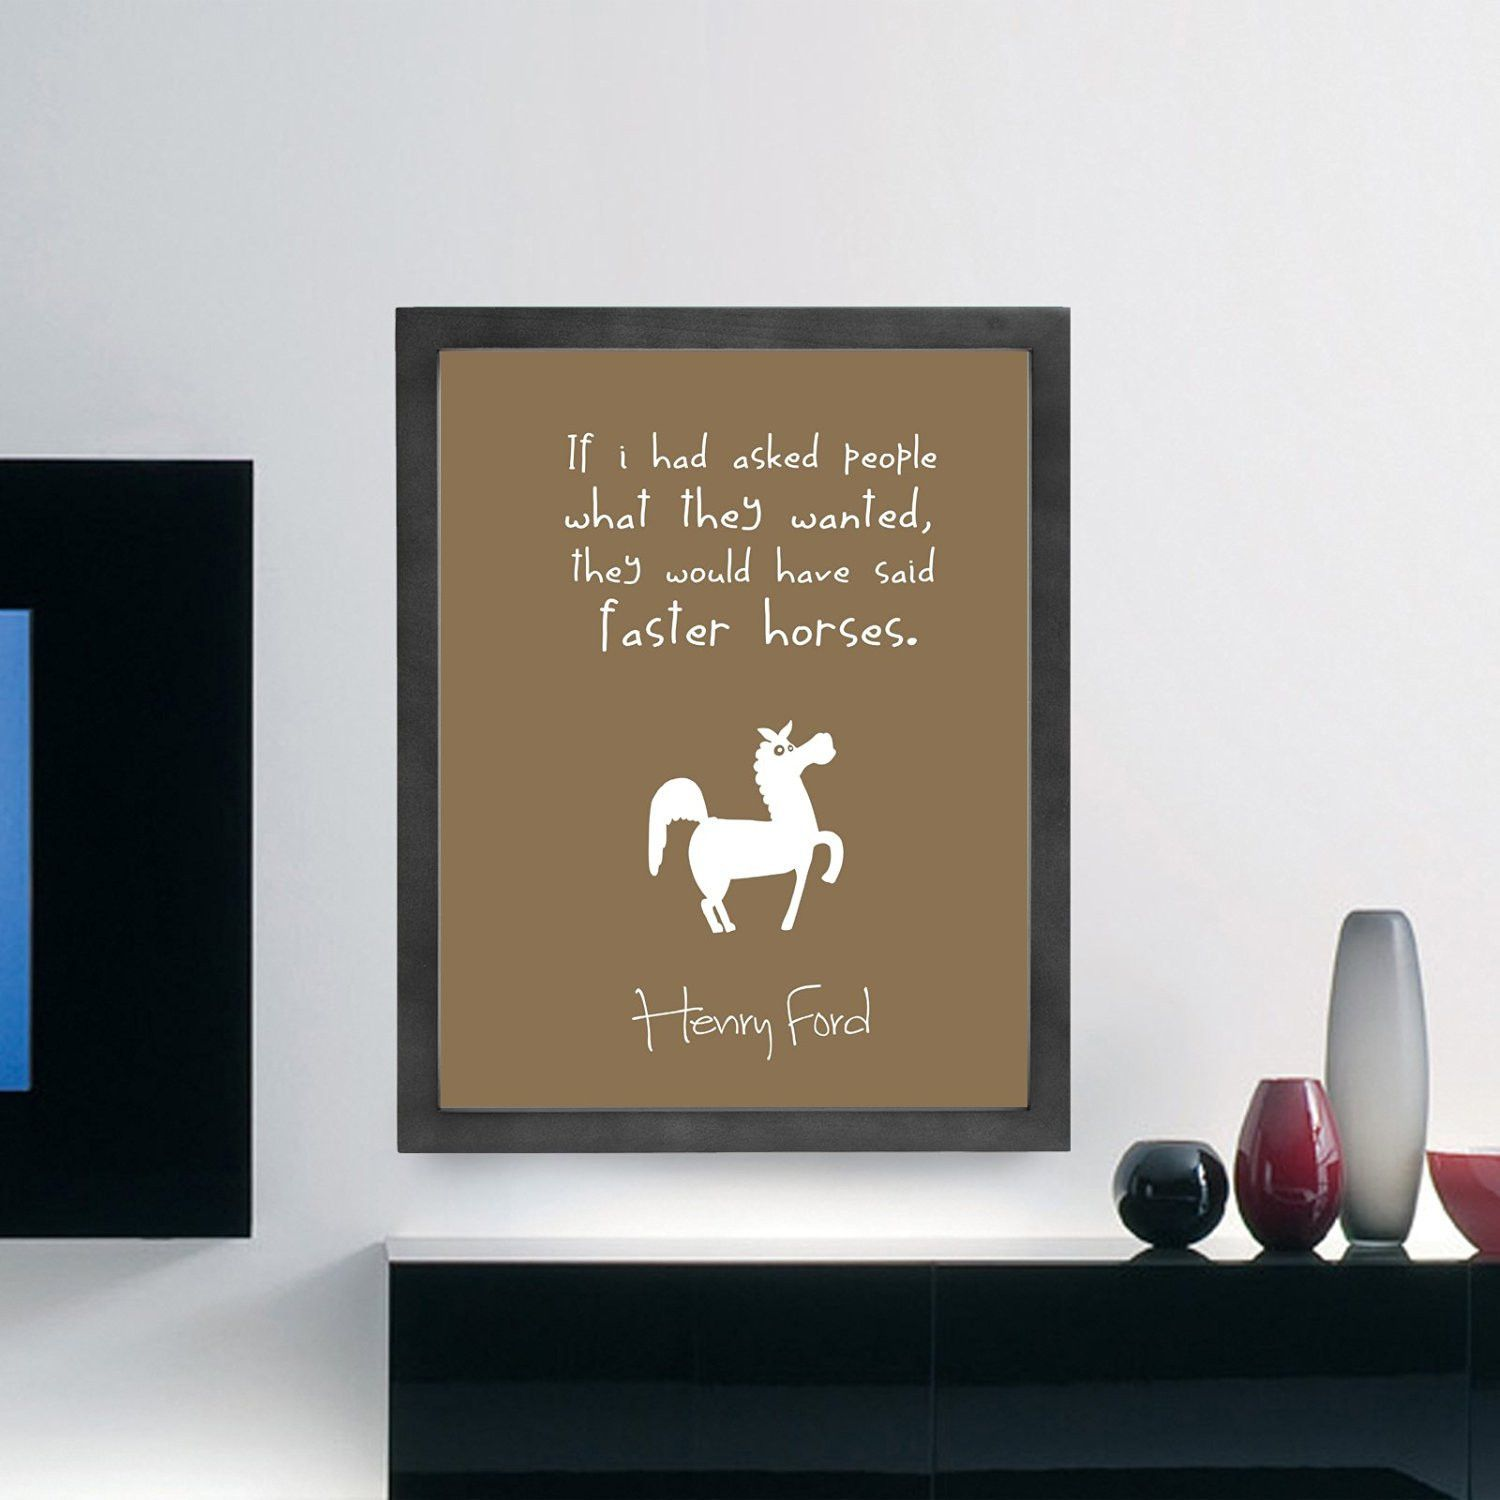 Henry Ford Inspirational Typography Quote Wall Poster